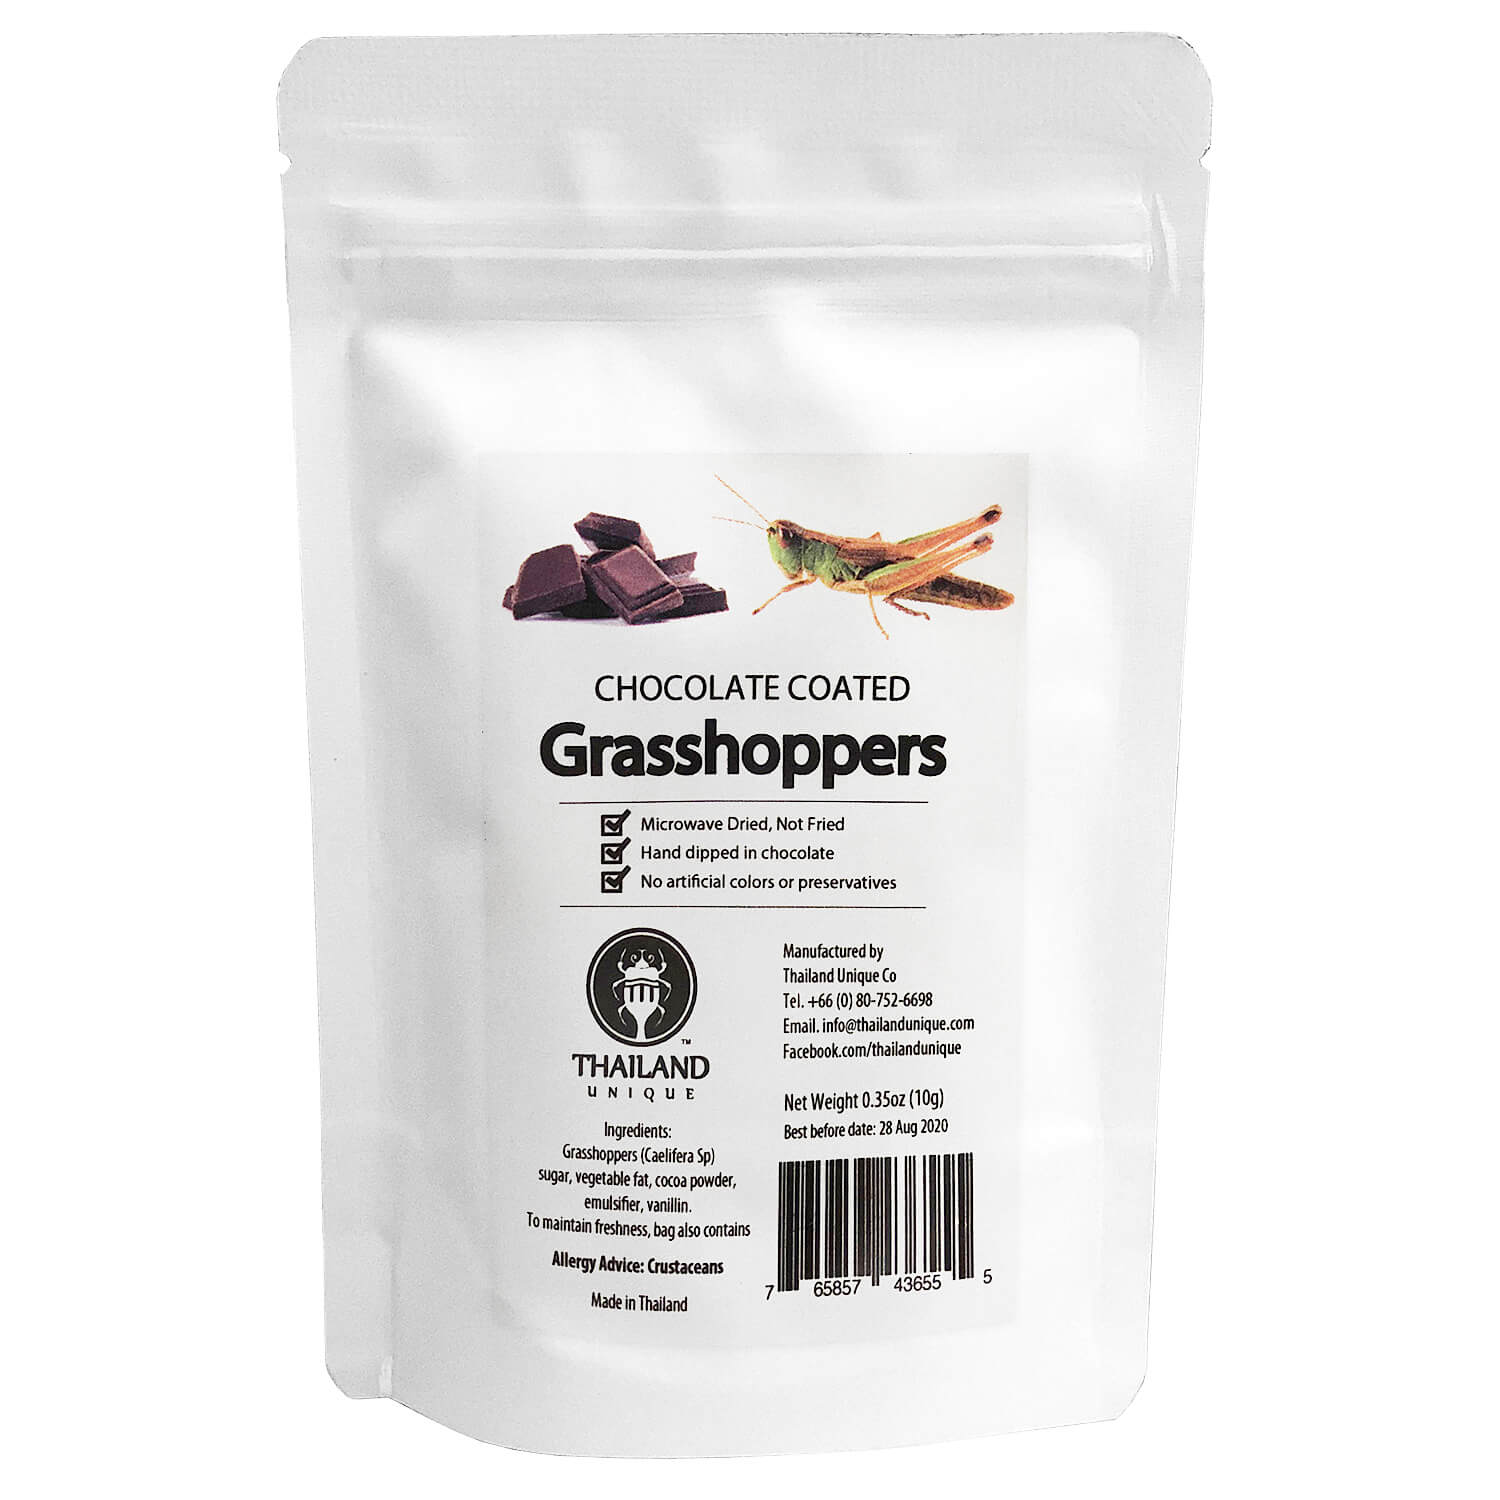 Chocolate coated grasshoppers(チョコレートグラスホッパー)